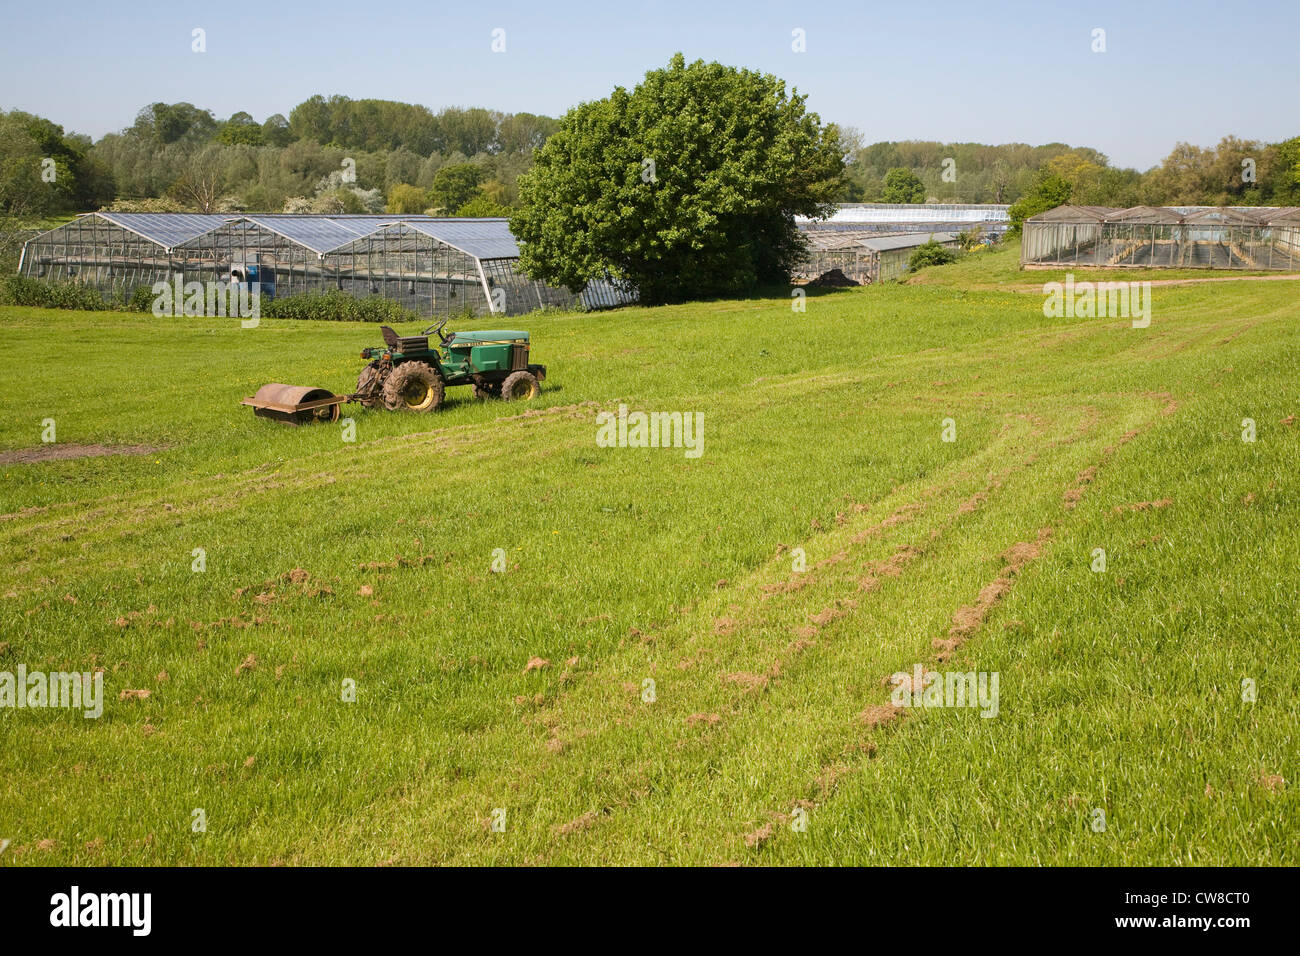 Old tractor and glasshouses of market garden Newbourne Suffolk England - Stock Image